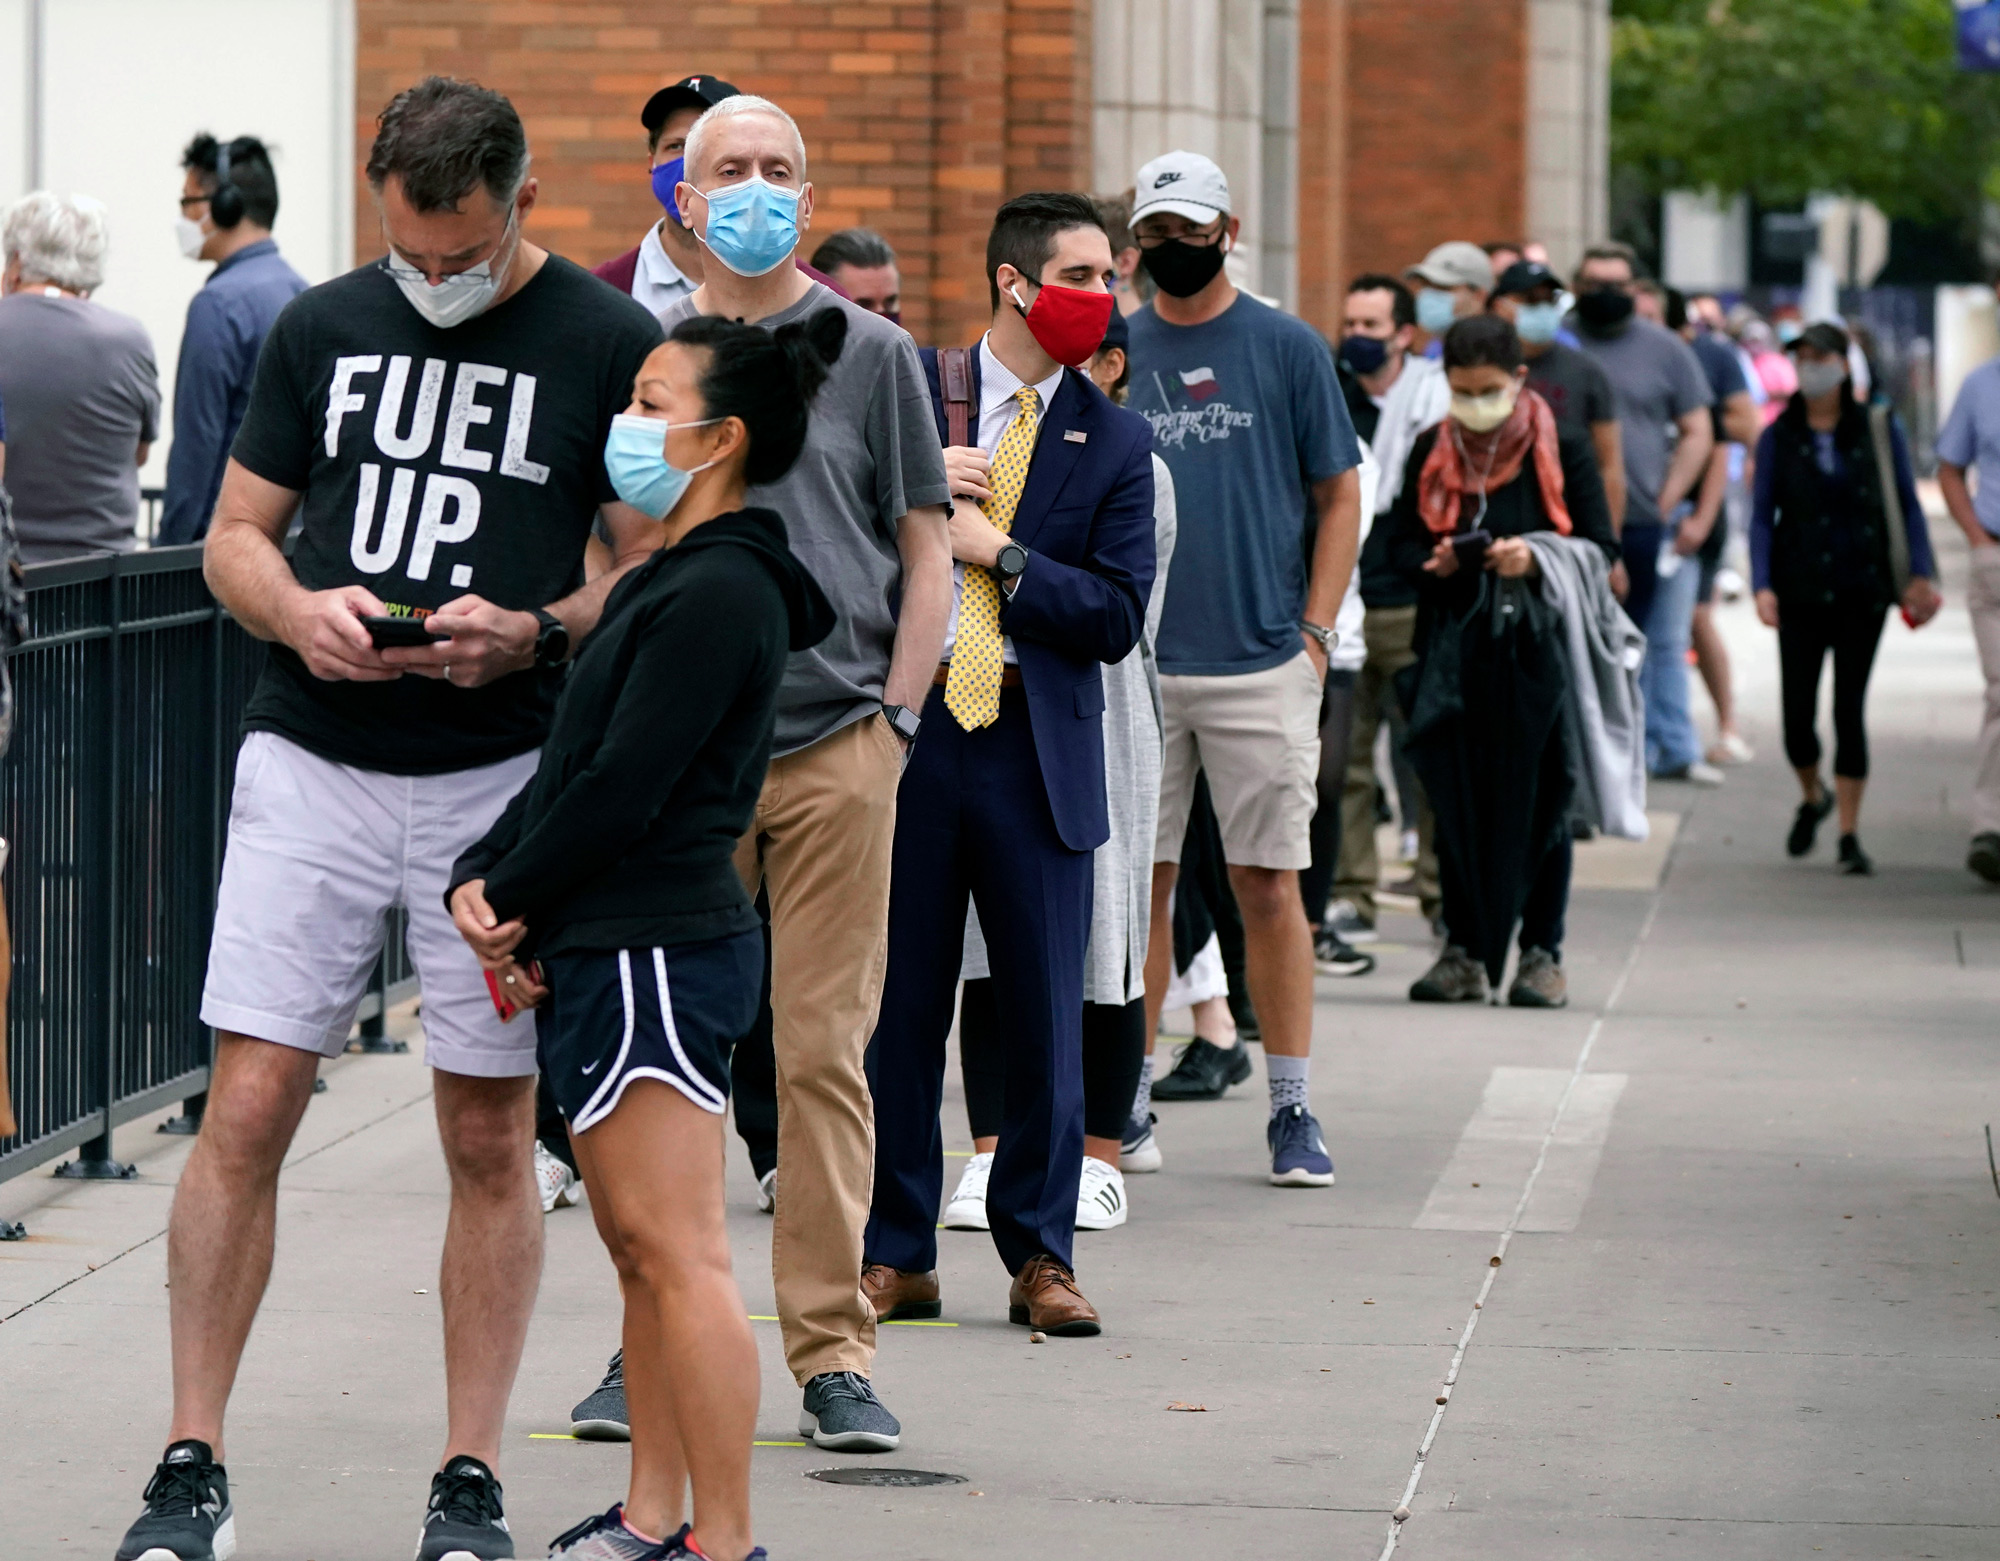 Voters wait to cast a ballot at the American Airlines Center during early voting on October 15 in Dallas.